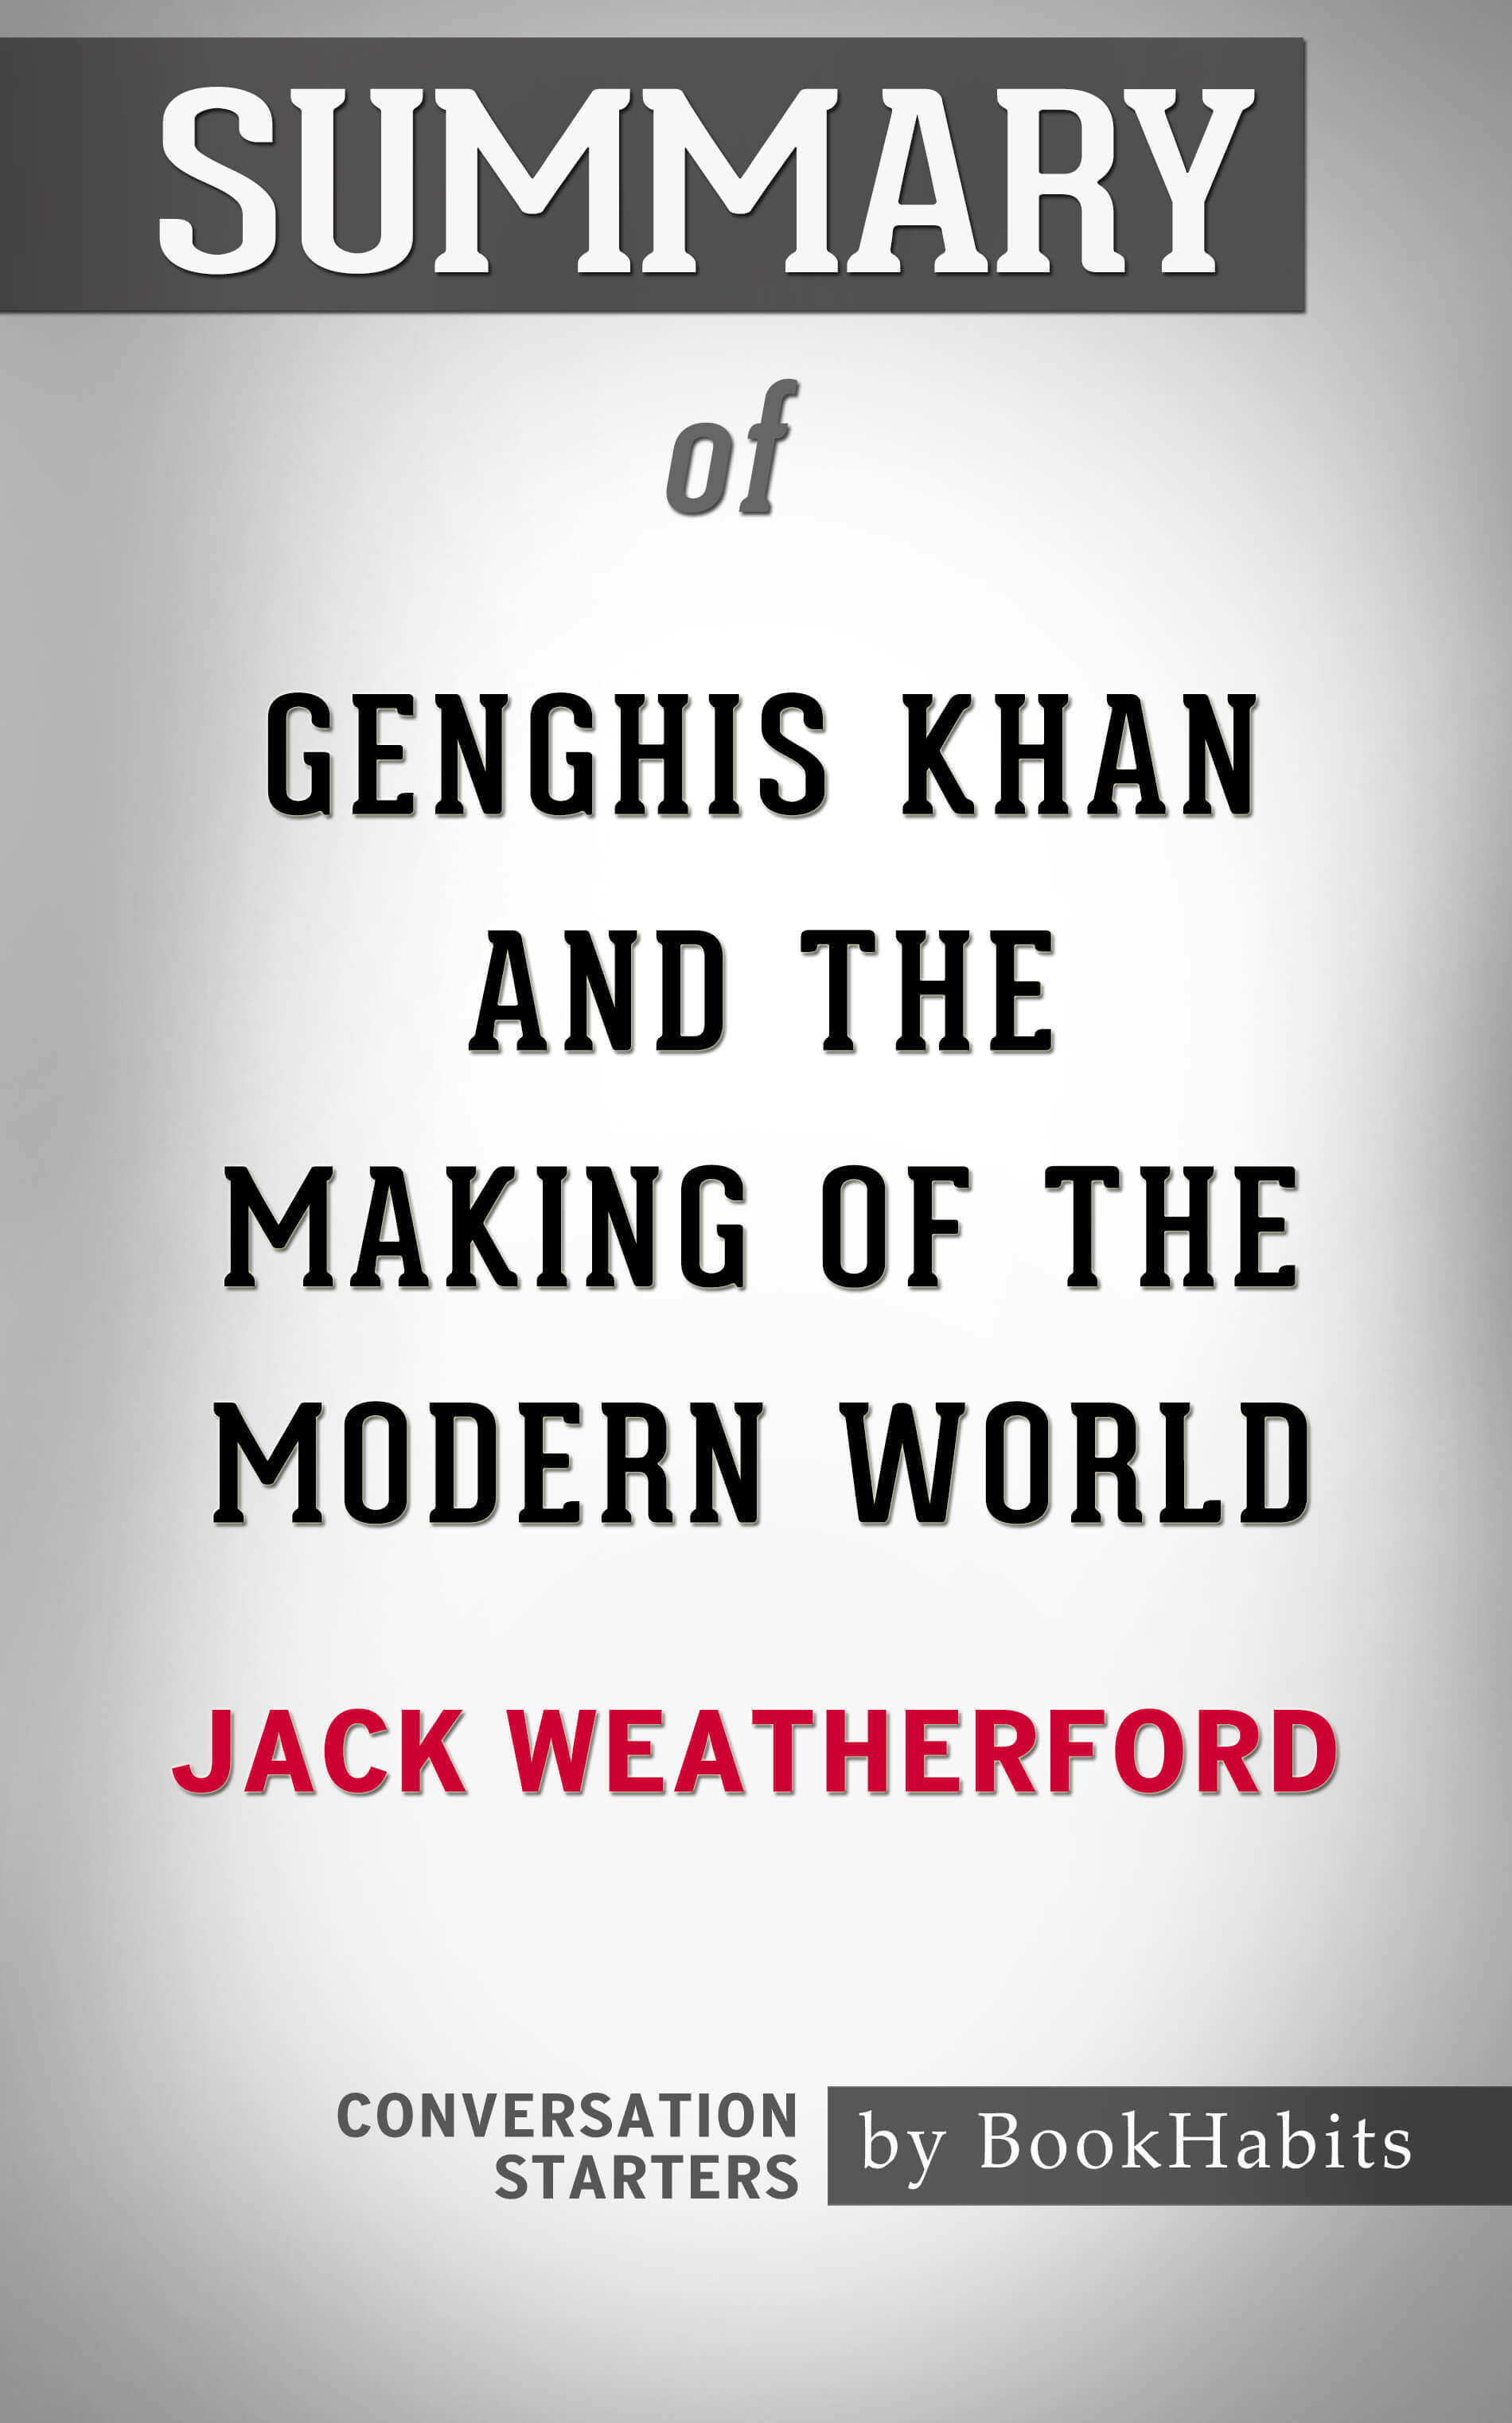 Summary of Genghis Khan and the Making of the Modern World by Jack Weatherford | Conversation Starters